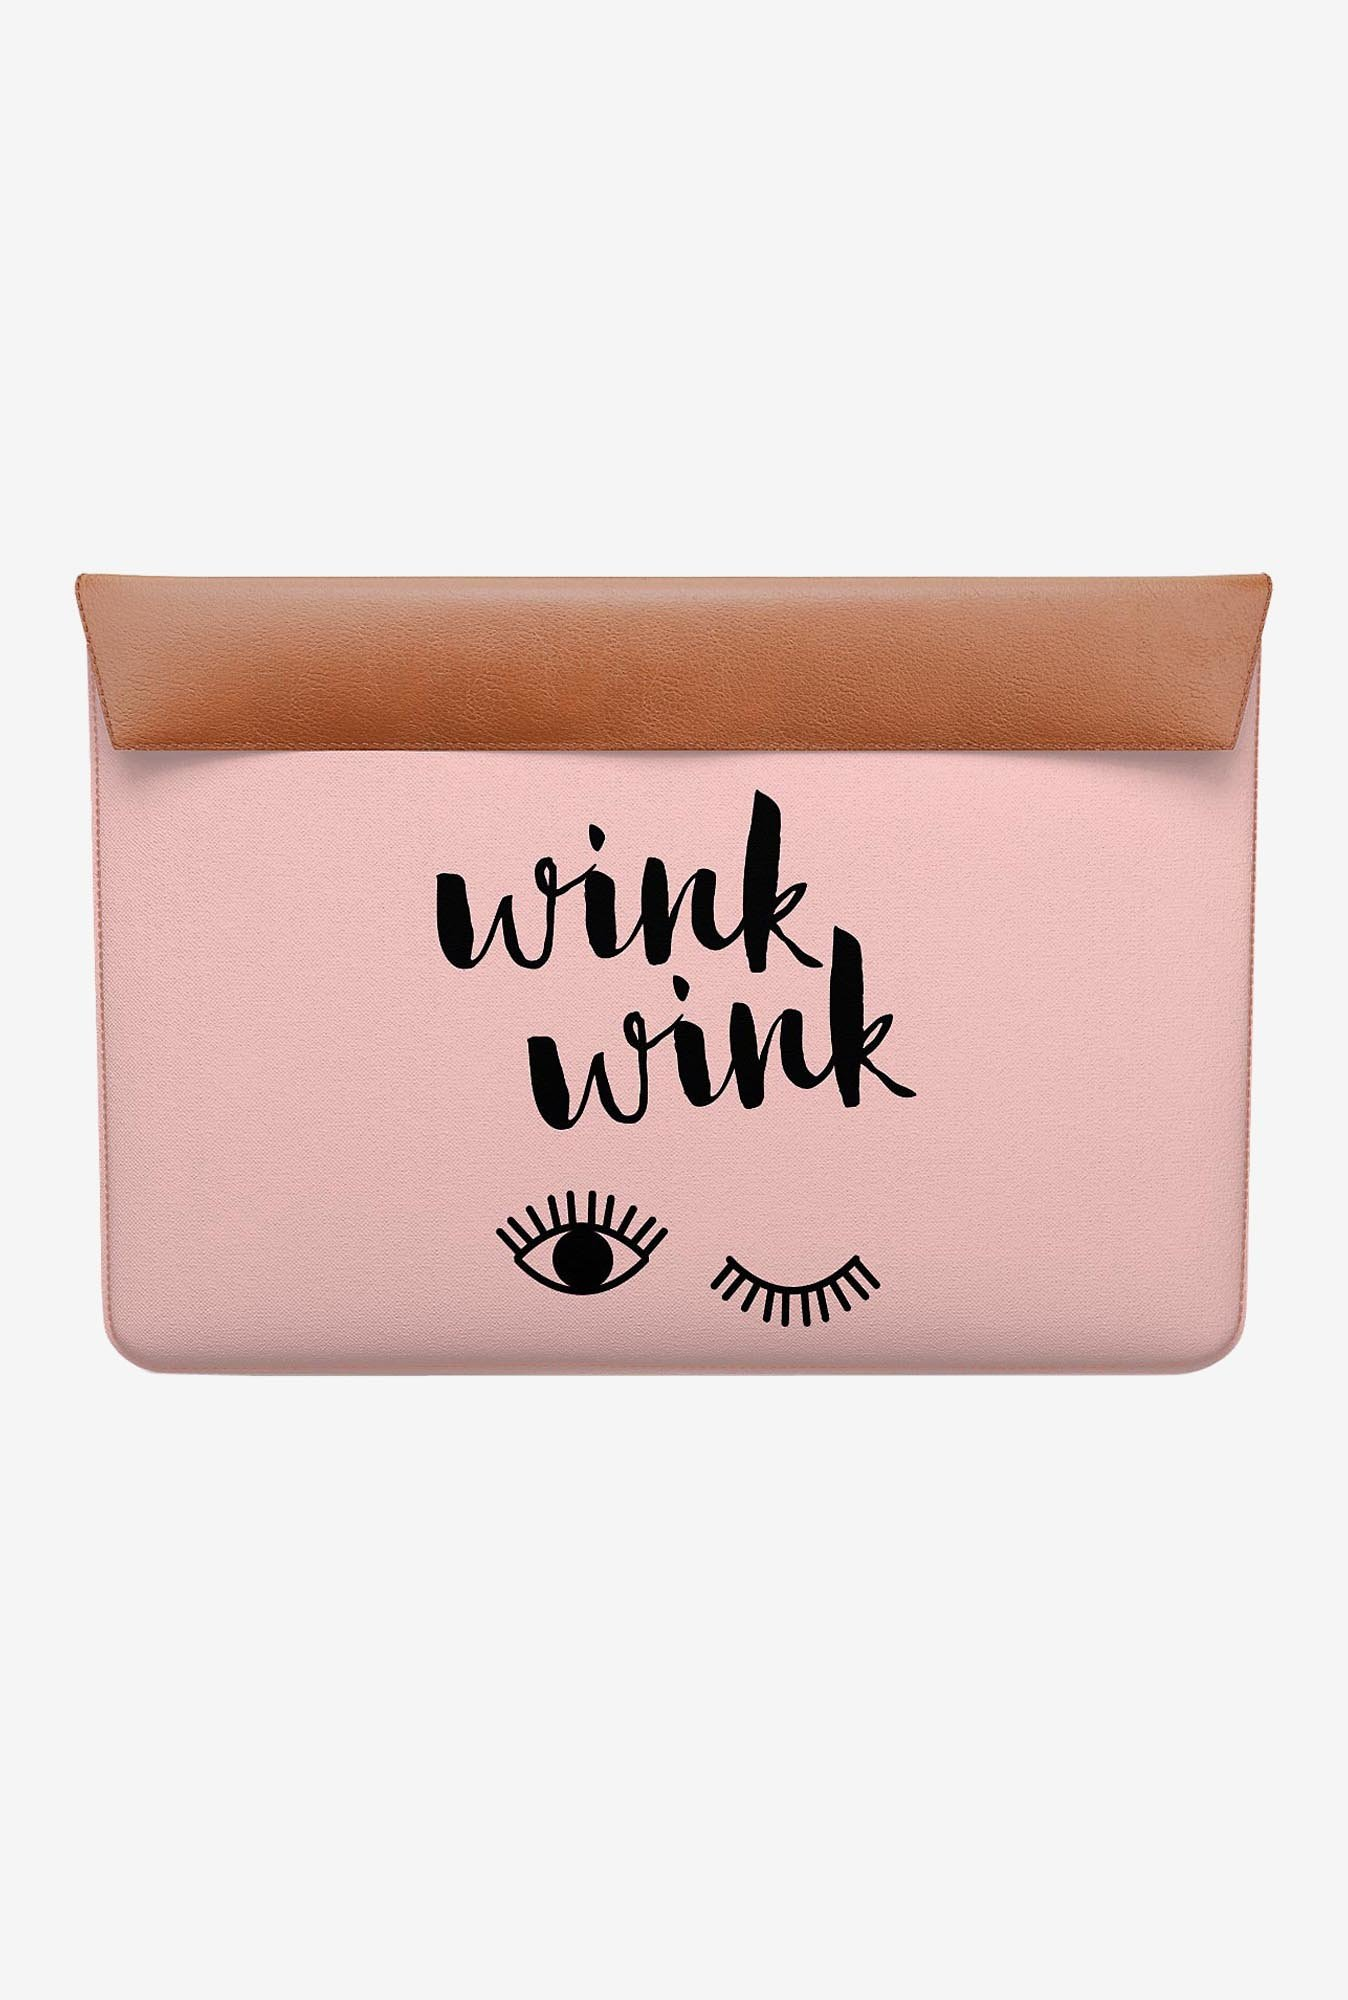 DailyObjects Wink Wink MacBook 12 Envelope Sleeve